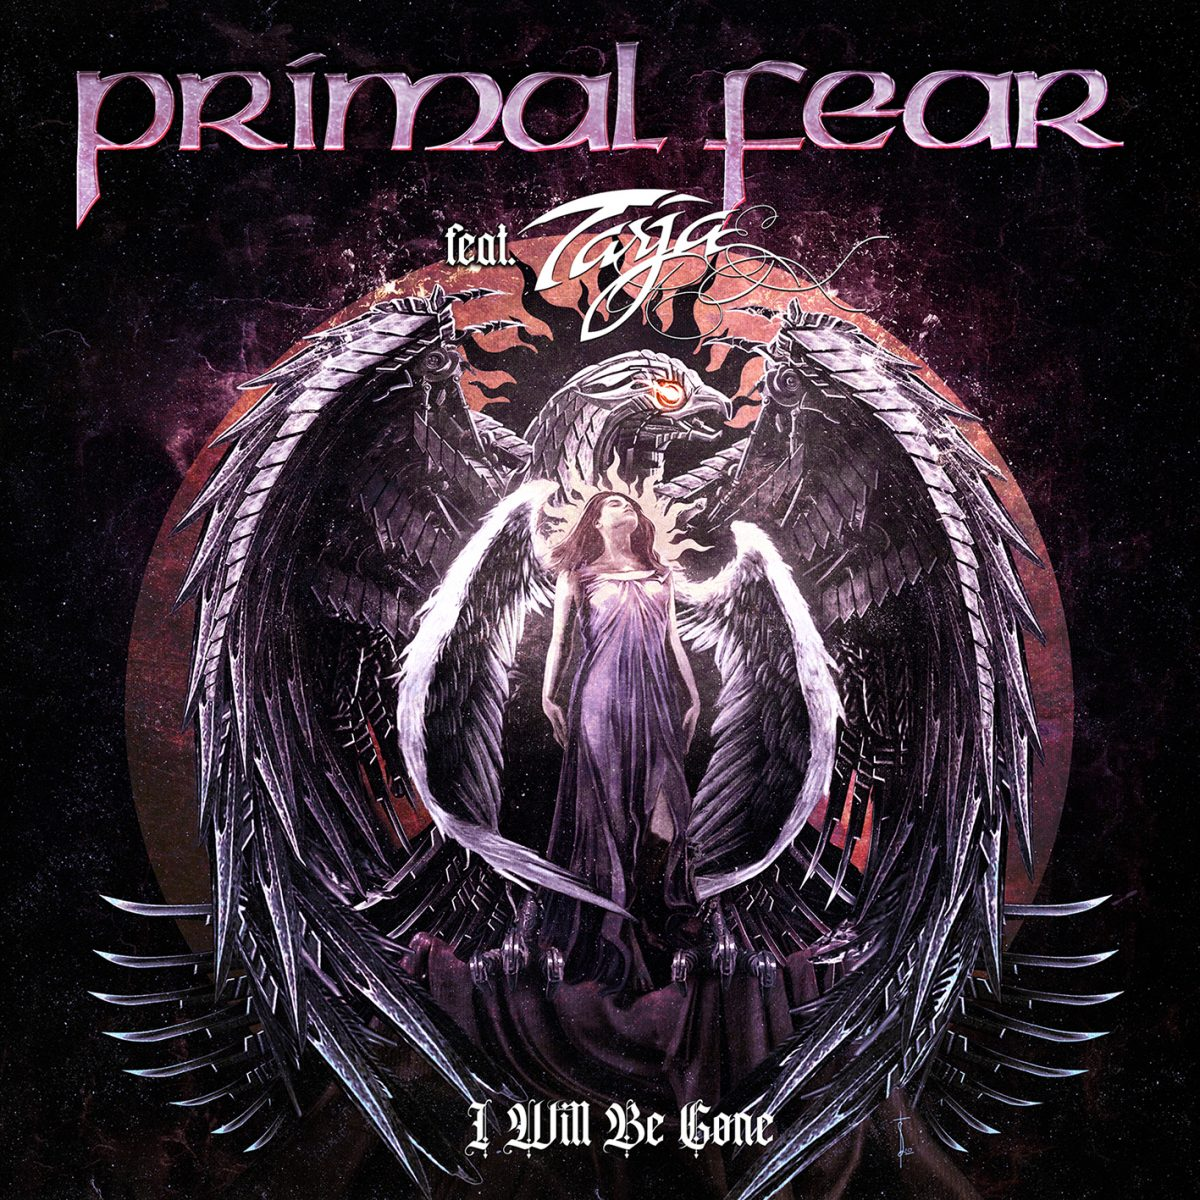 primal-fear-i-will-be-gone-single-review